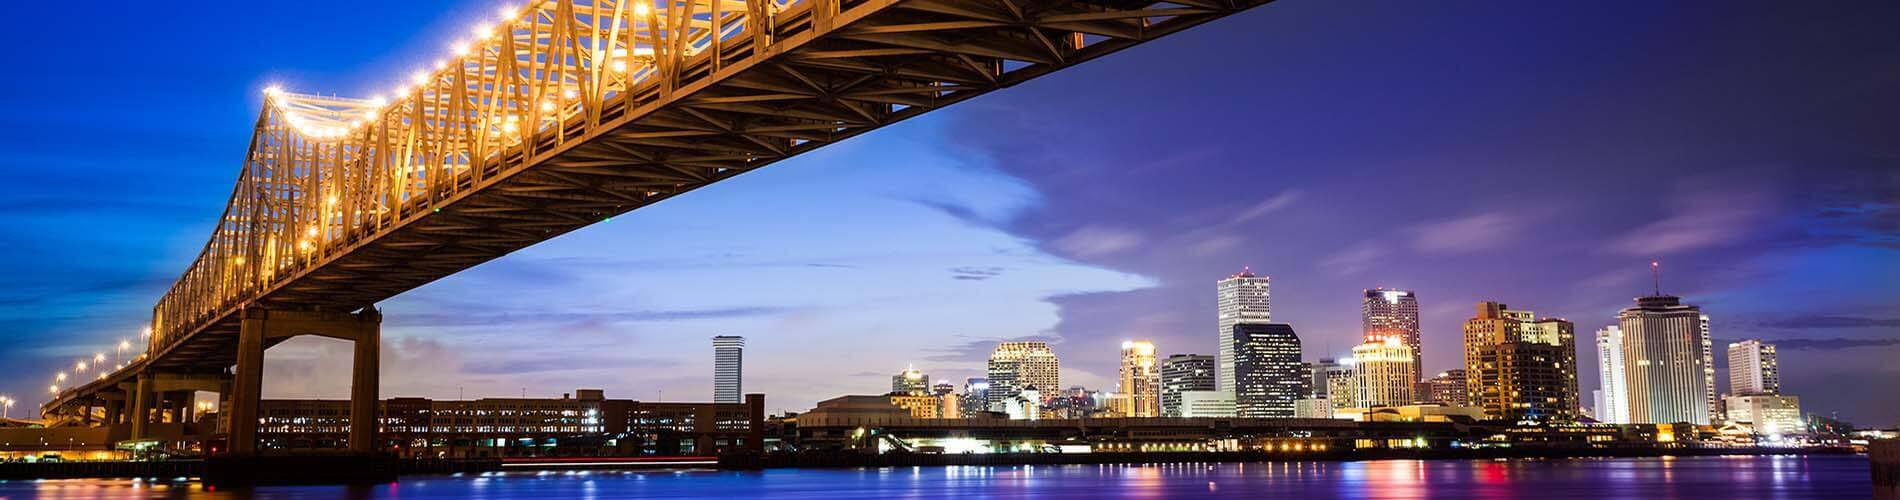 city scene of New Orleans showing water, skyline and a bridge